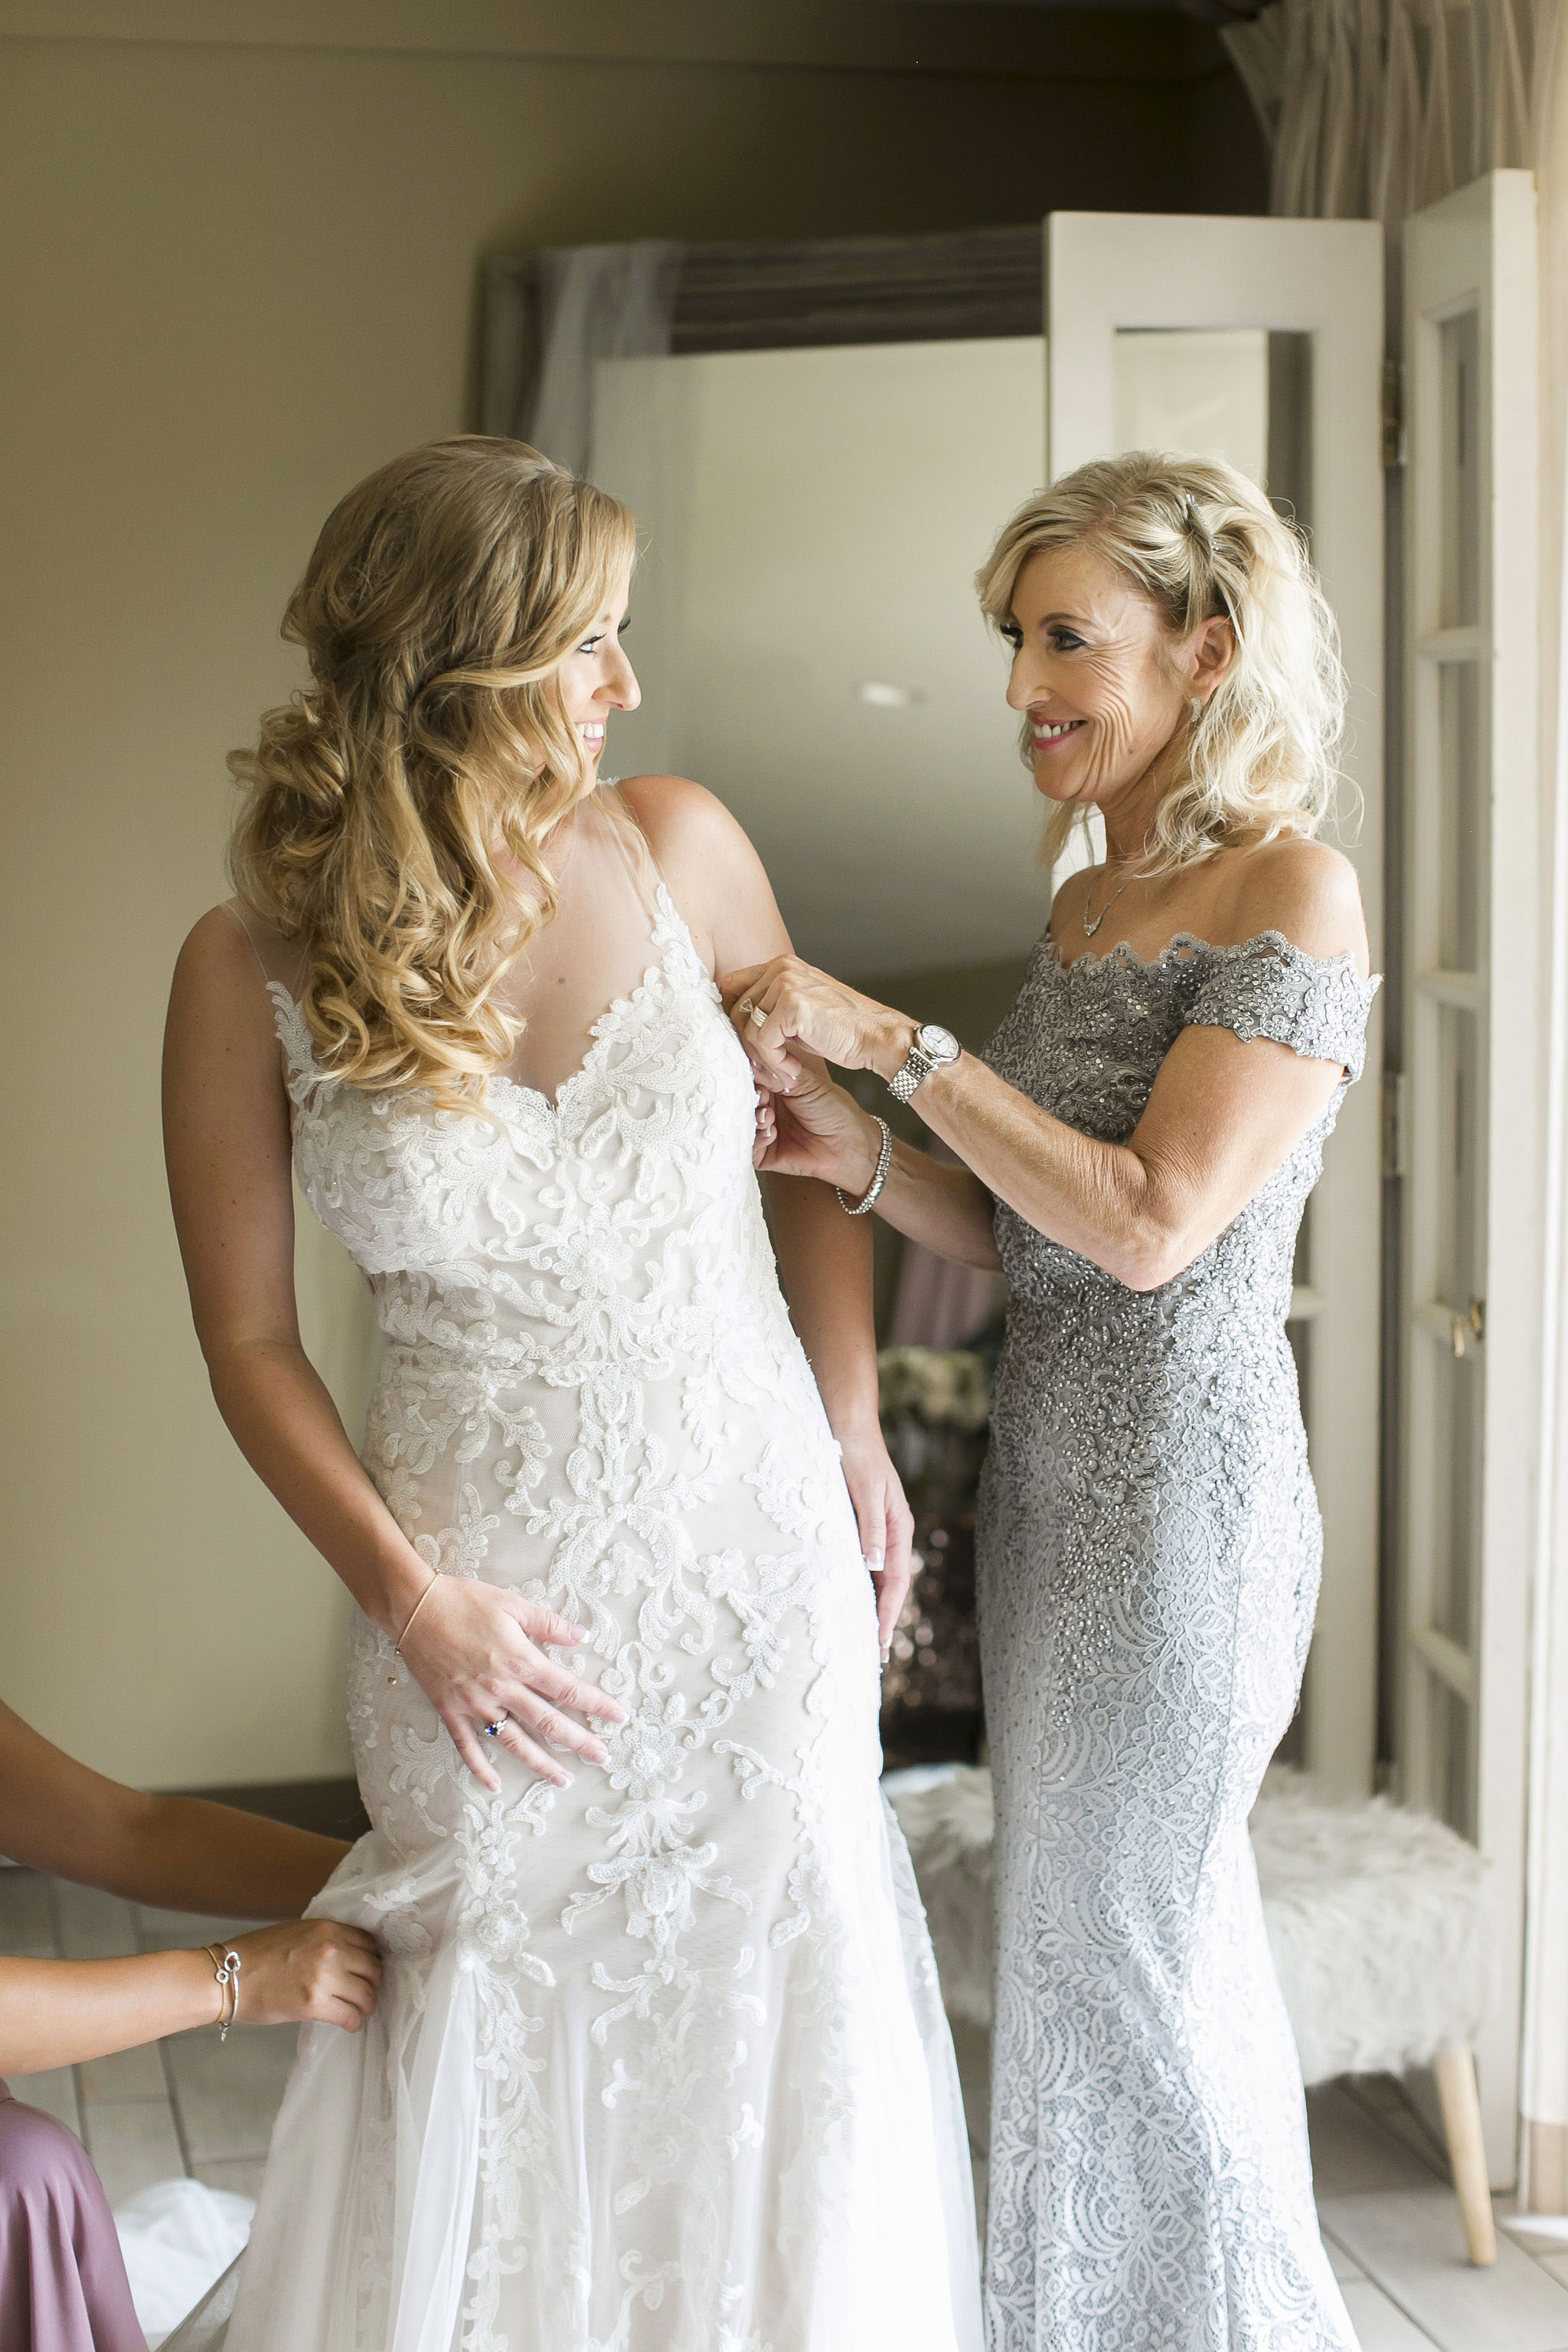 Domenica Beauty _ Hair and Makeup Artist _Wedding _ Temecula, CA _ Alexandra and Corey _ 09.JPG